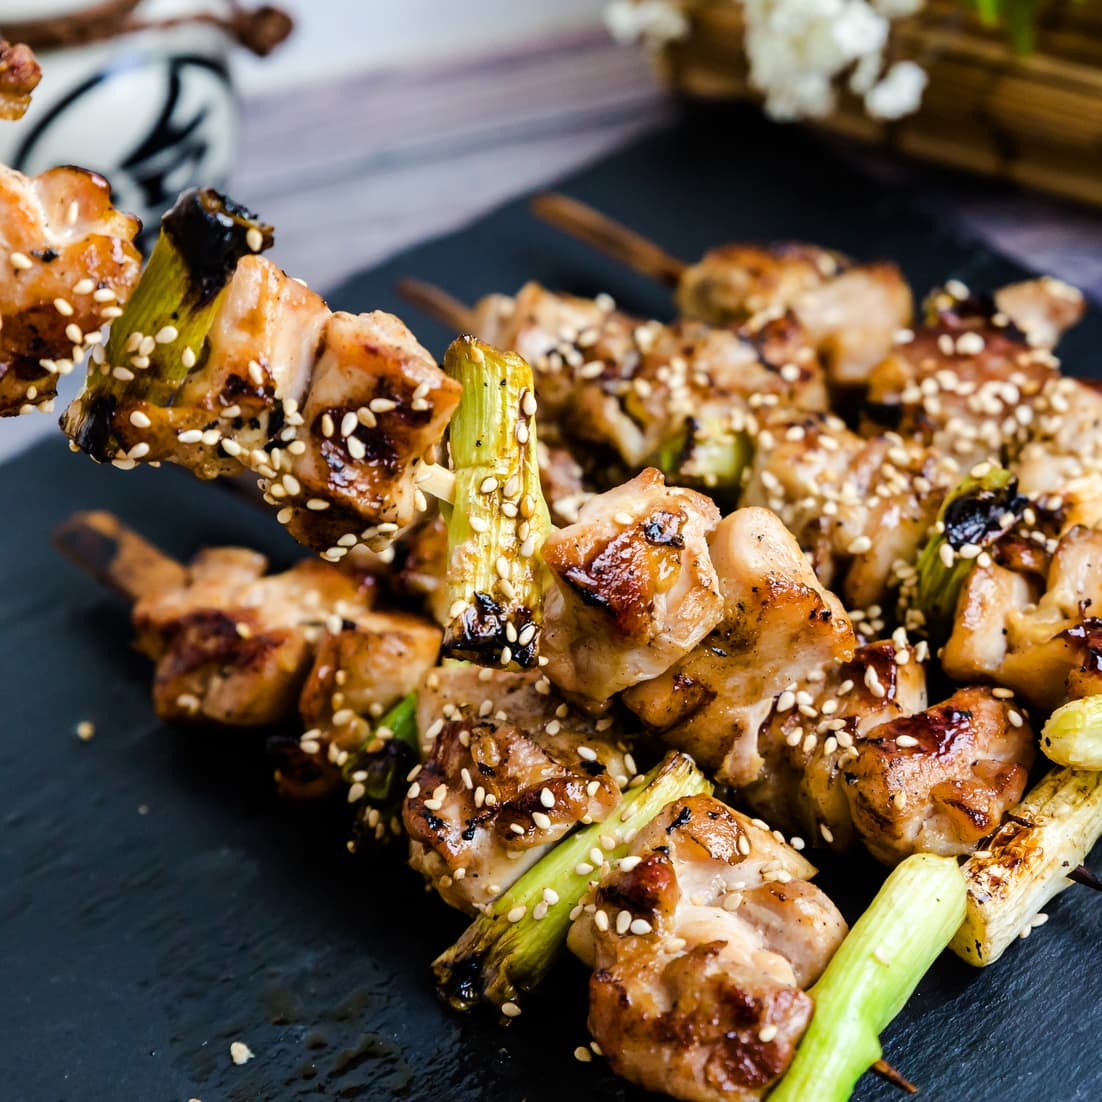 Yakitori grilled Japanese chicken with green onions on a skewer